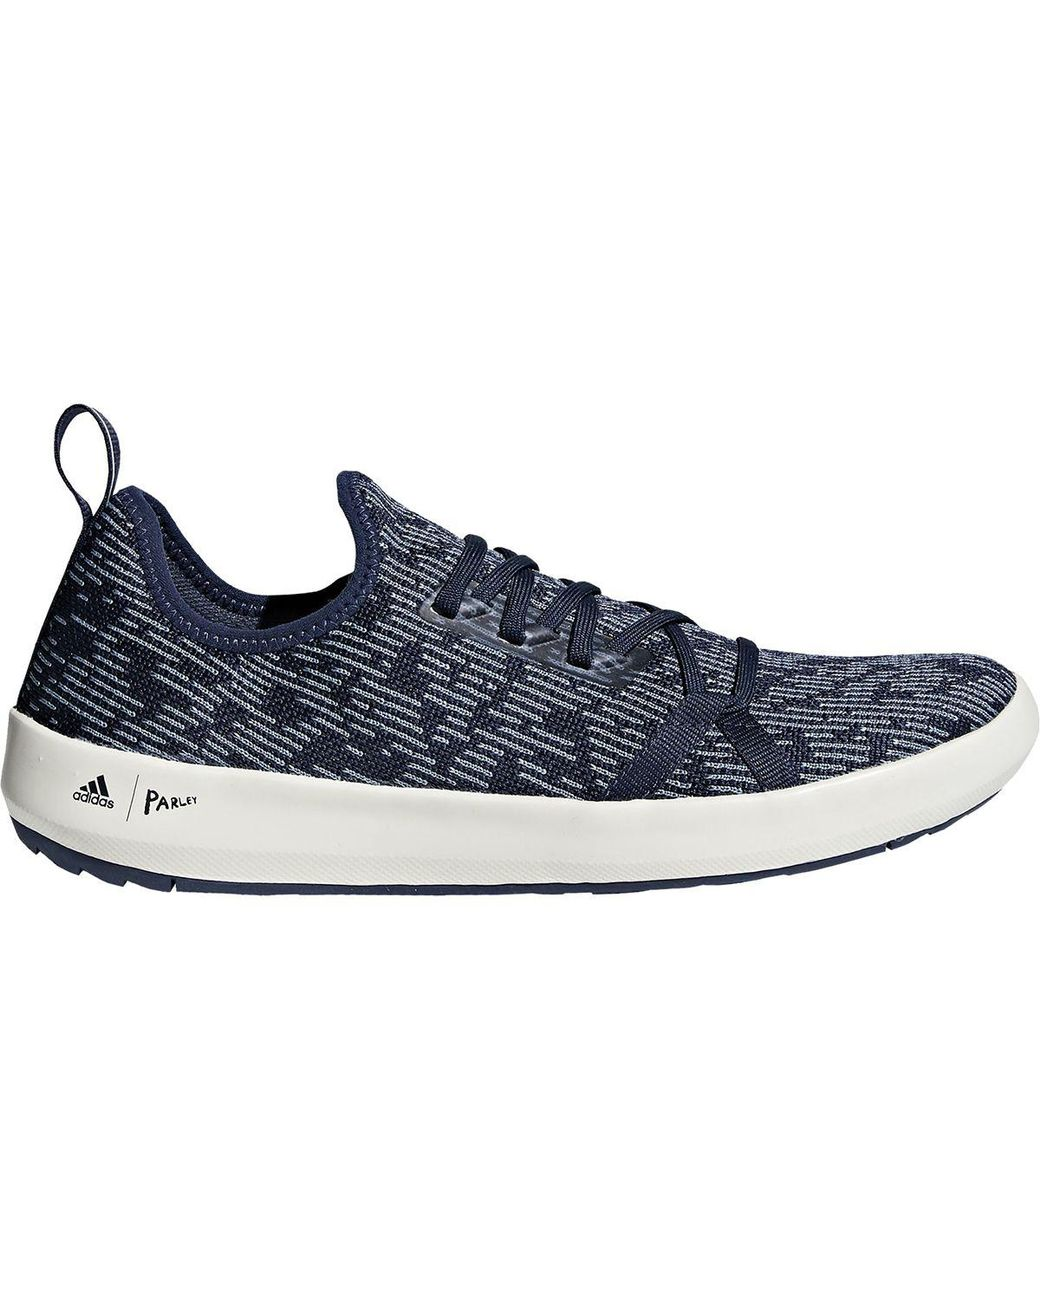 86667b5b adidas Originals Terrex Climacool Boat Parley Shoe in Blue for Men - Save  31% - Lyst